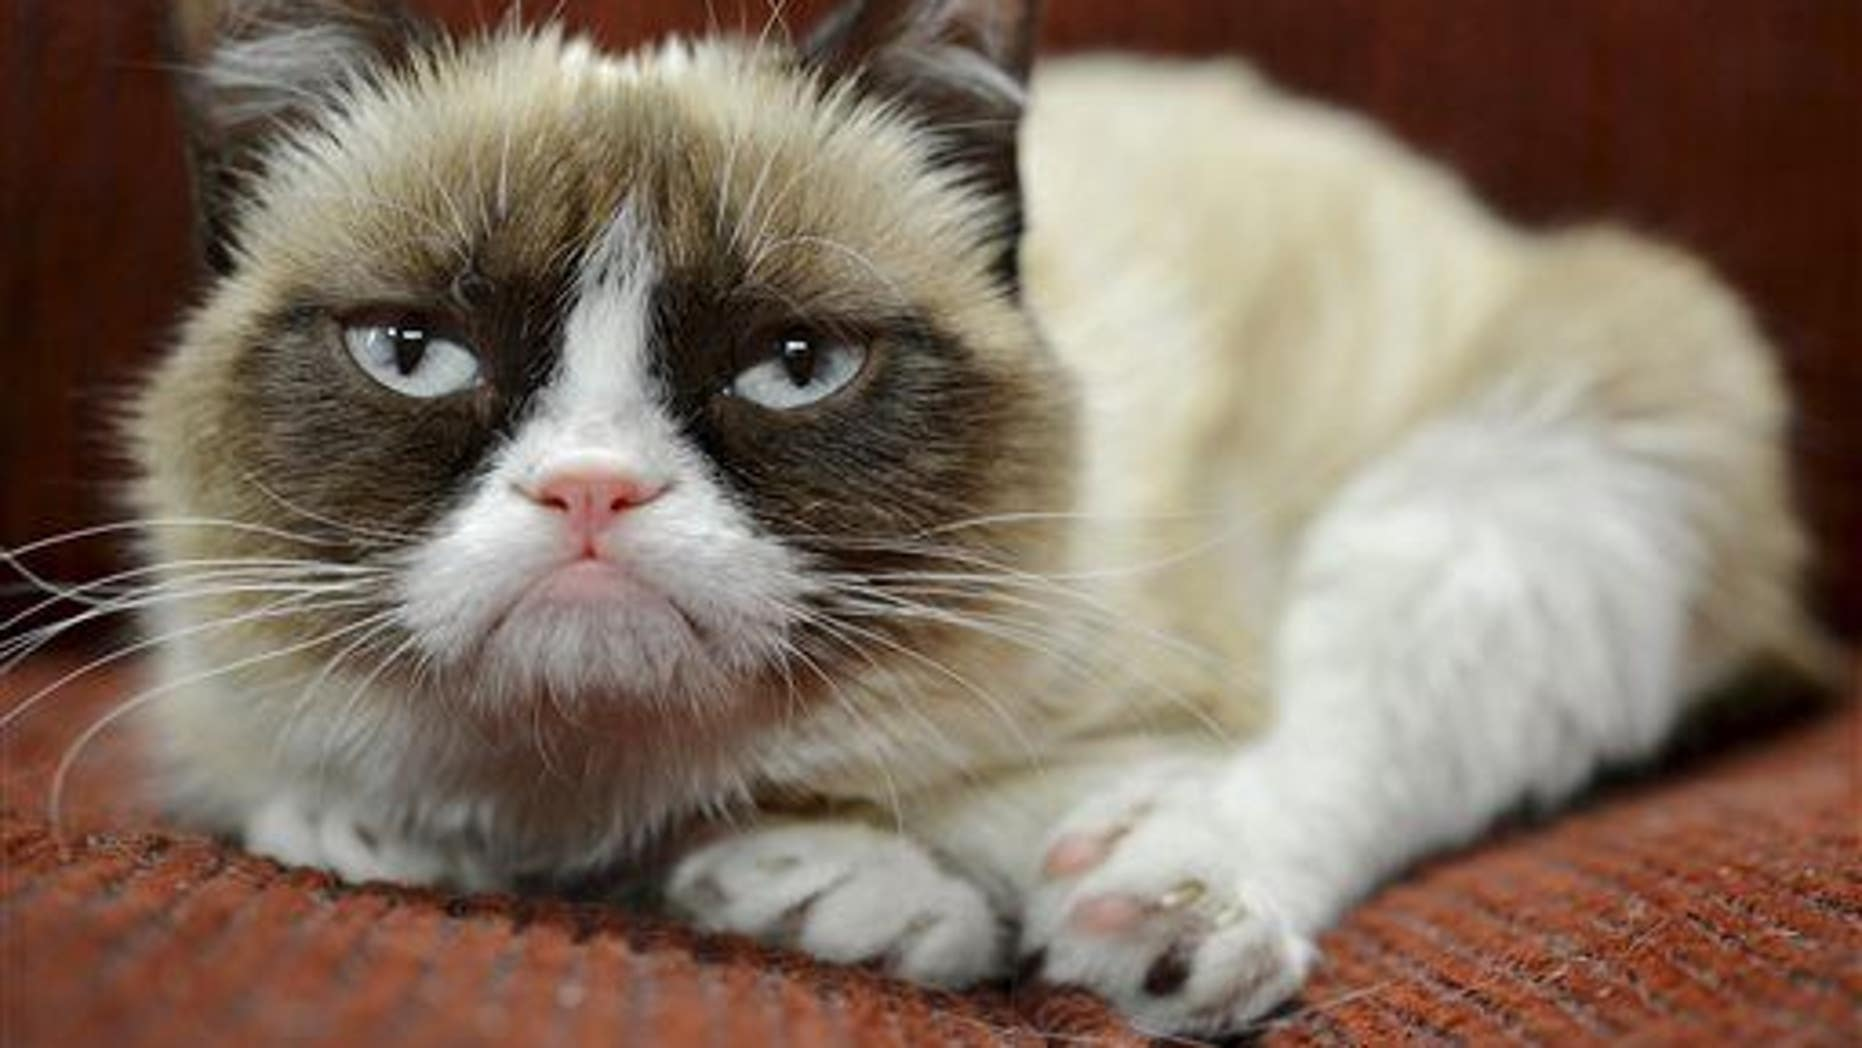 Maybe Grumpy Cat just needs more happy feline friends.